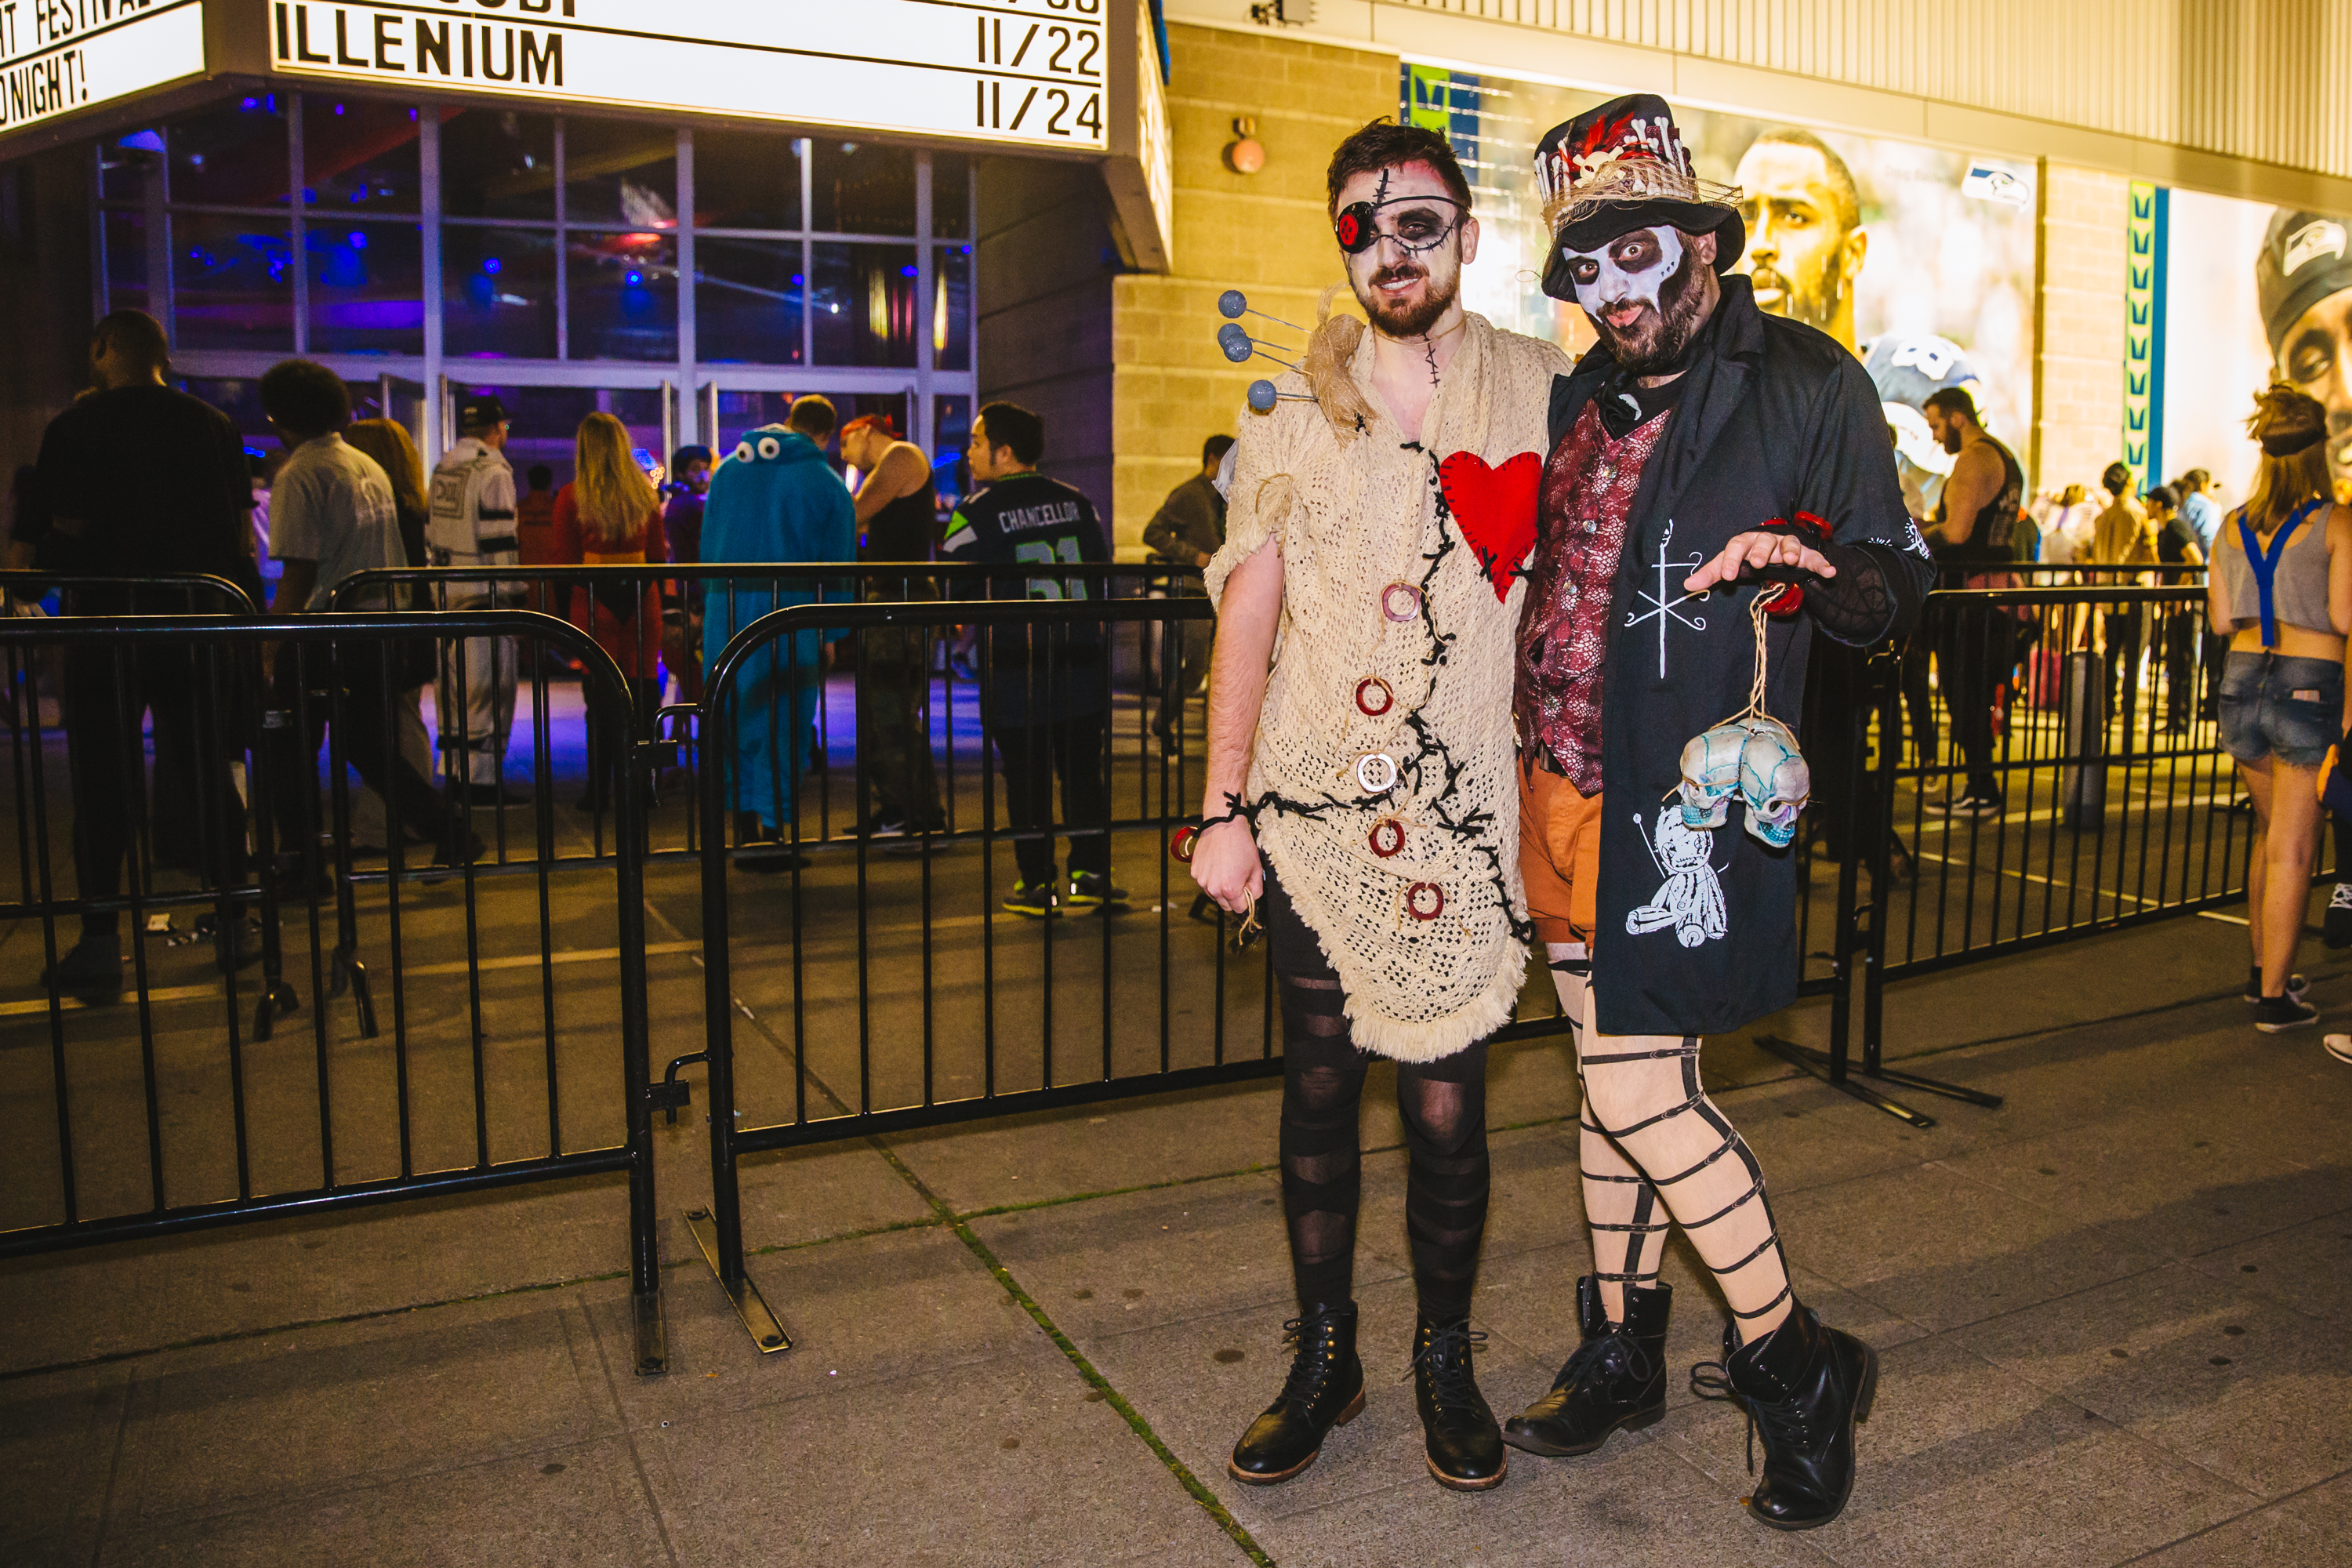 Thousands of people came to the WaMu Theater for the annual FreakNight Electronic Music Festival on Friday night, October 27 2017. The event brings out wildly costumed fans who dance the night away, go on rides and play carnival games. (Image: Sunita Martini / Seattle Refined)